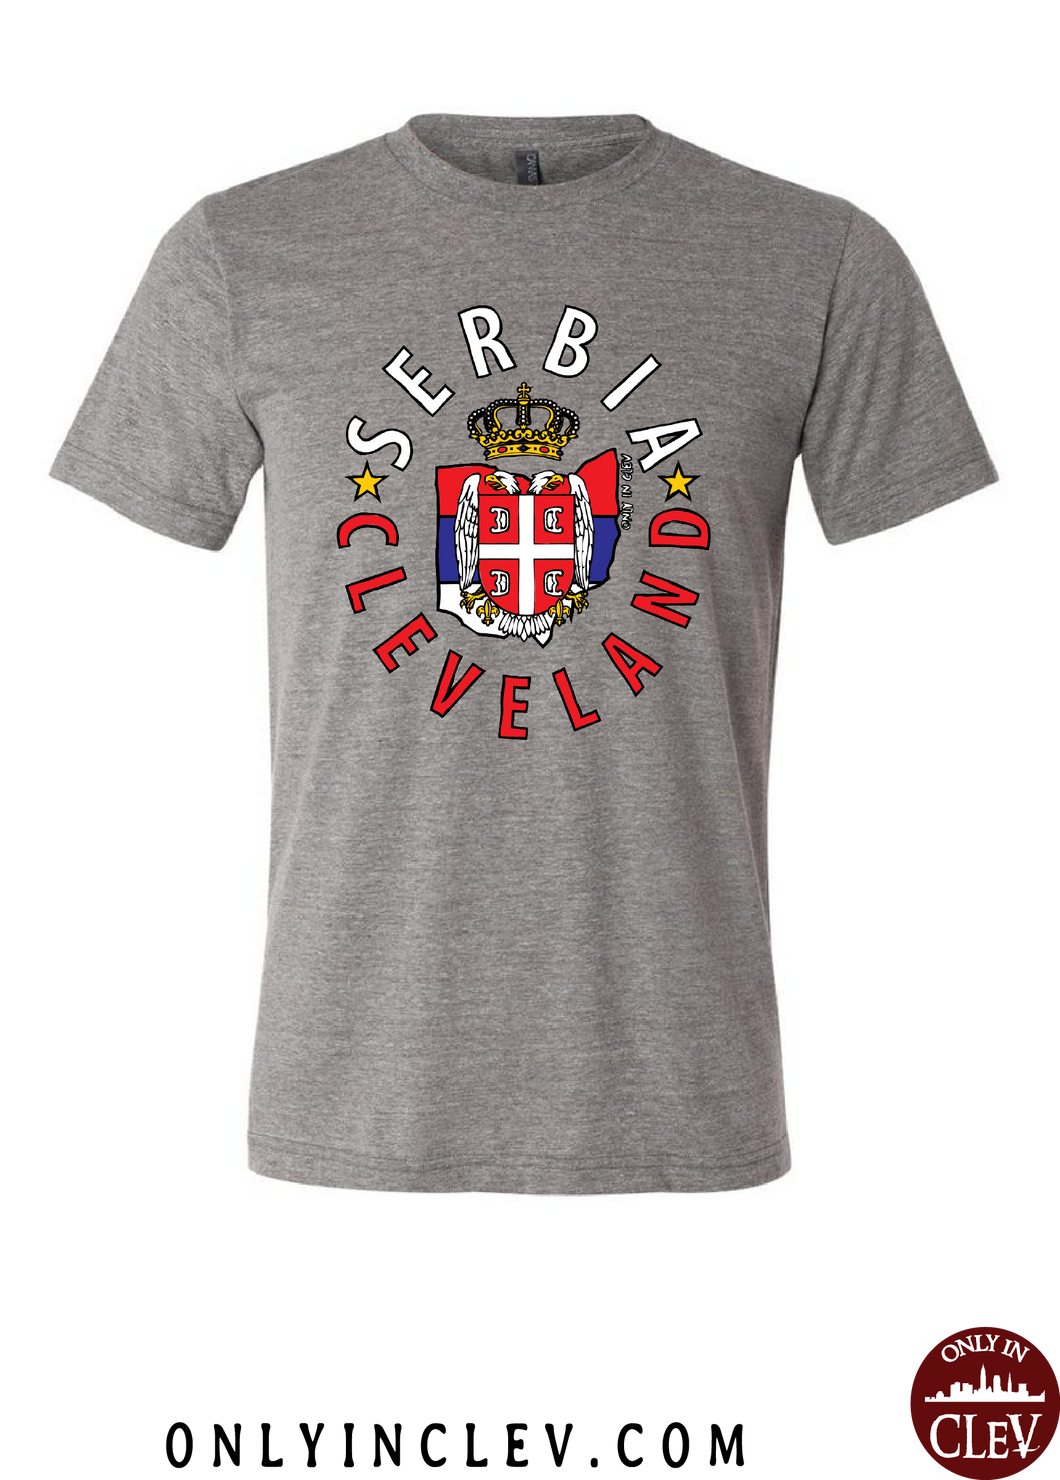 Cleveland Serbia-Nationality Tee